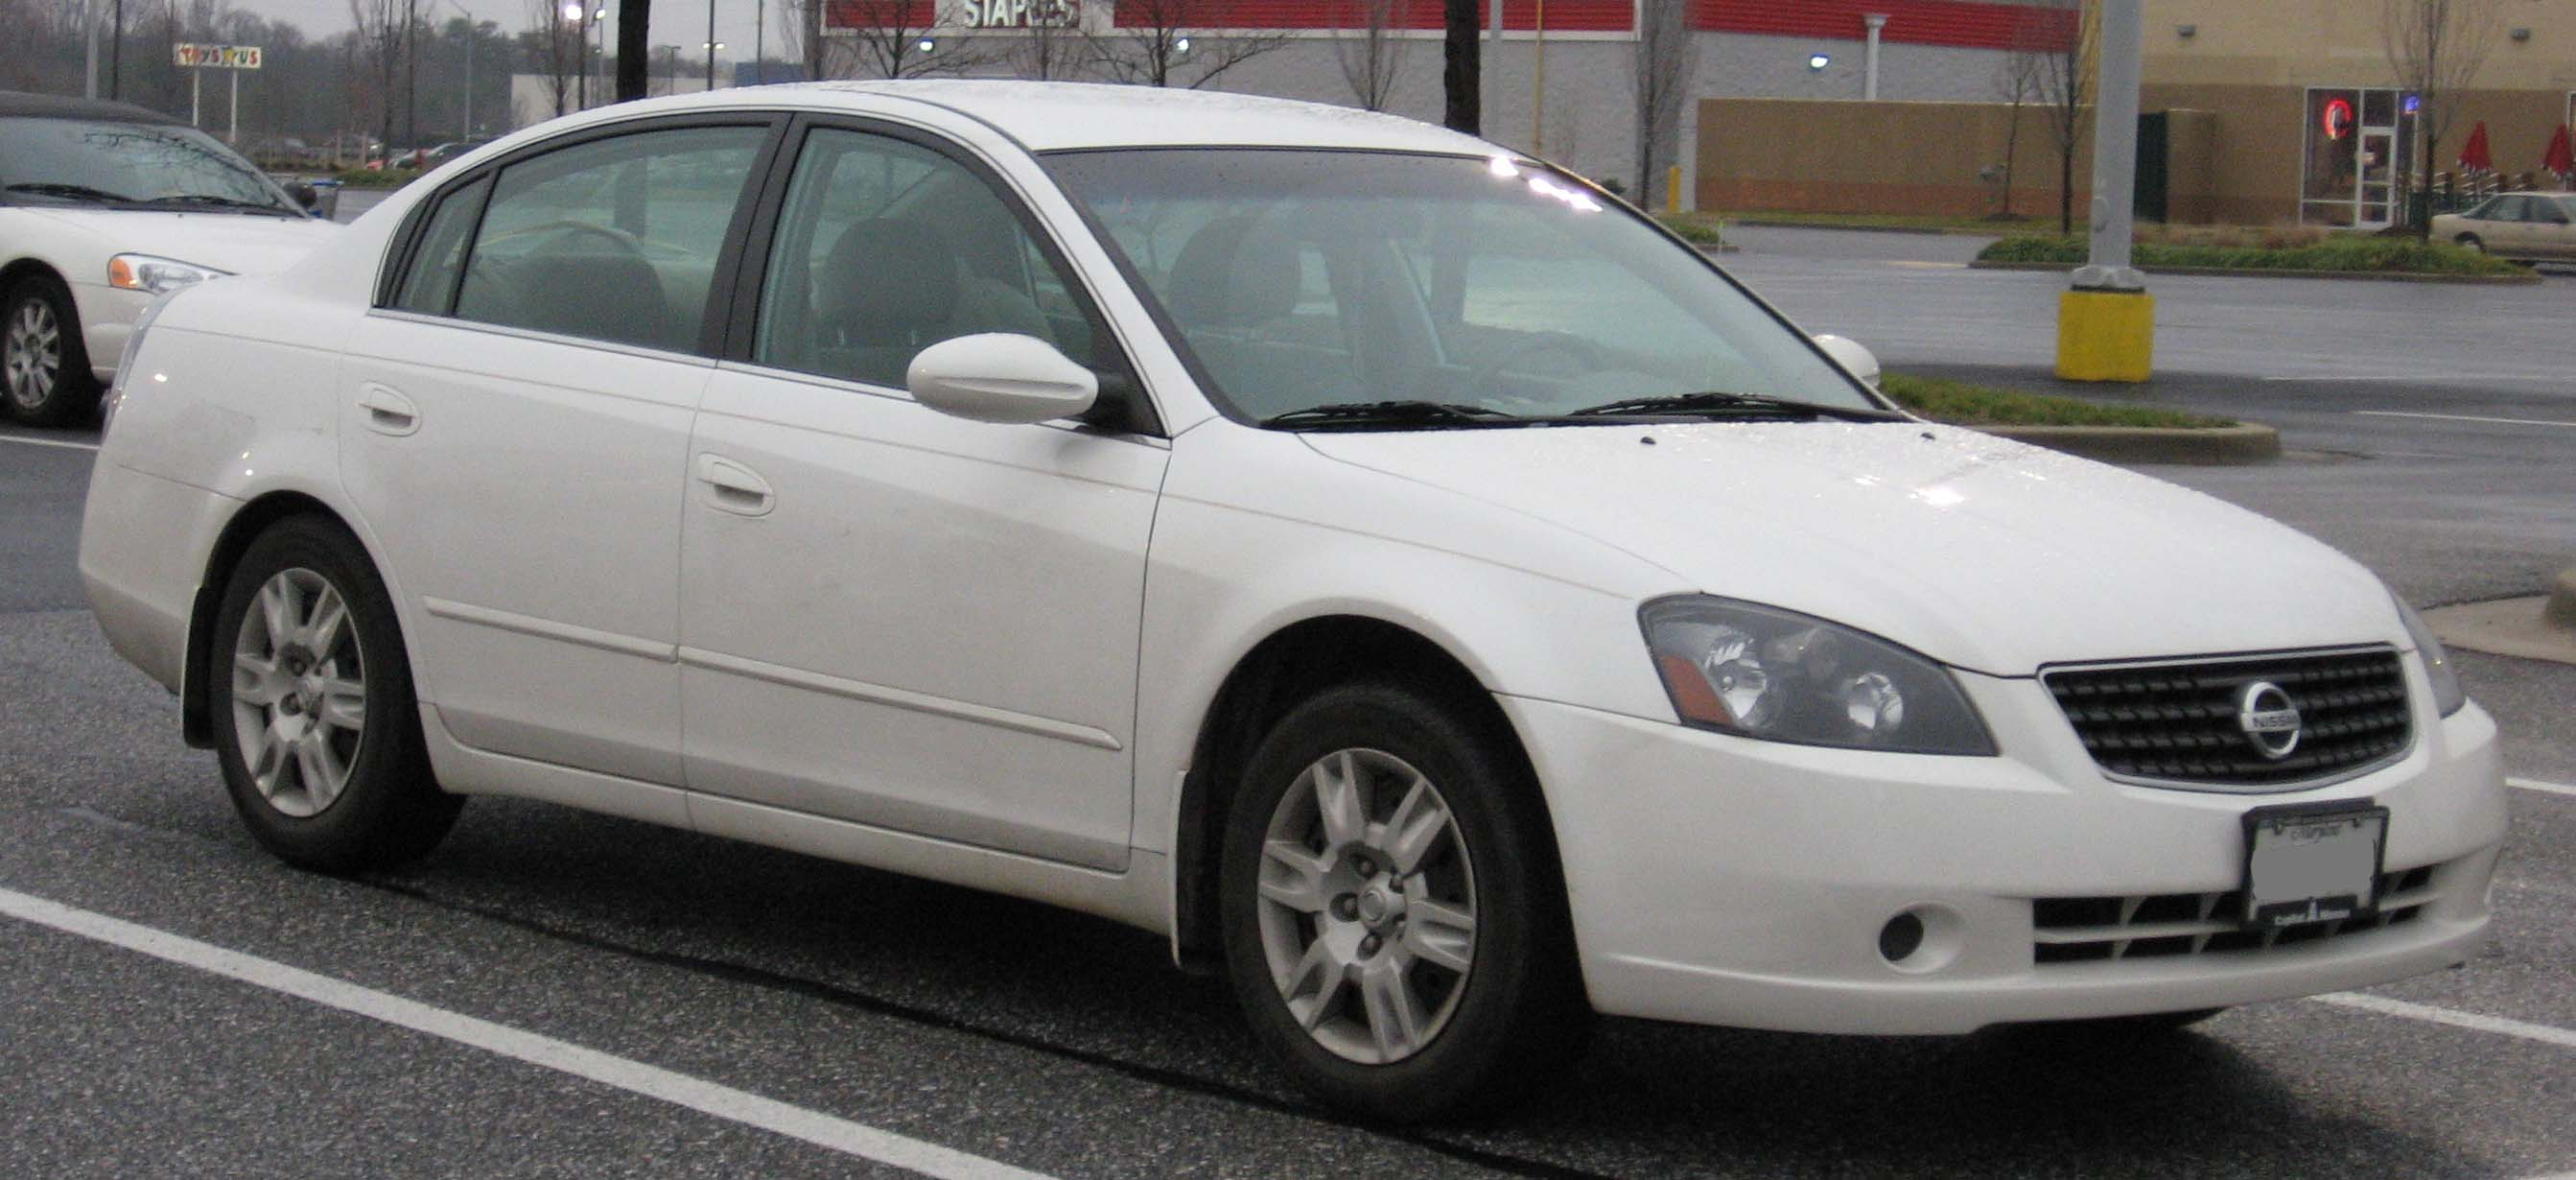 NISSAN ALTIMA white